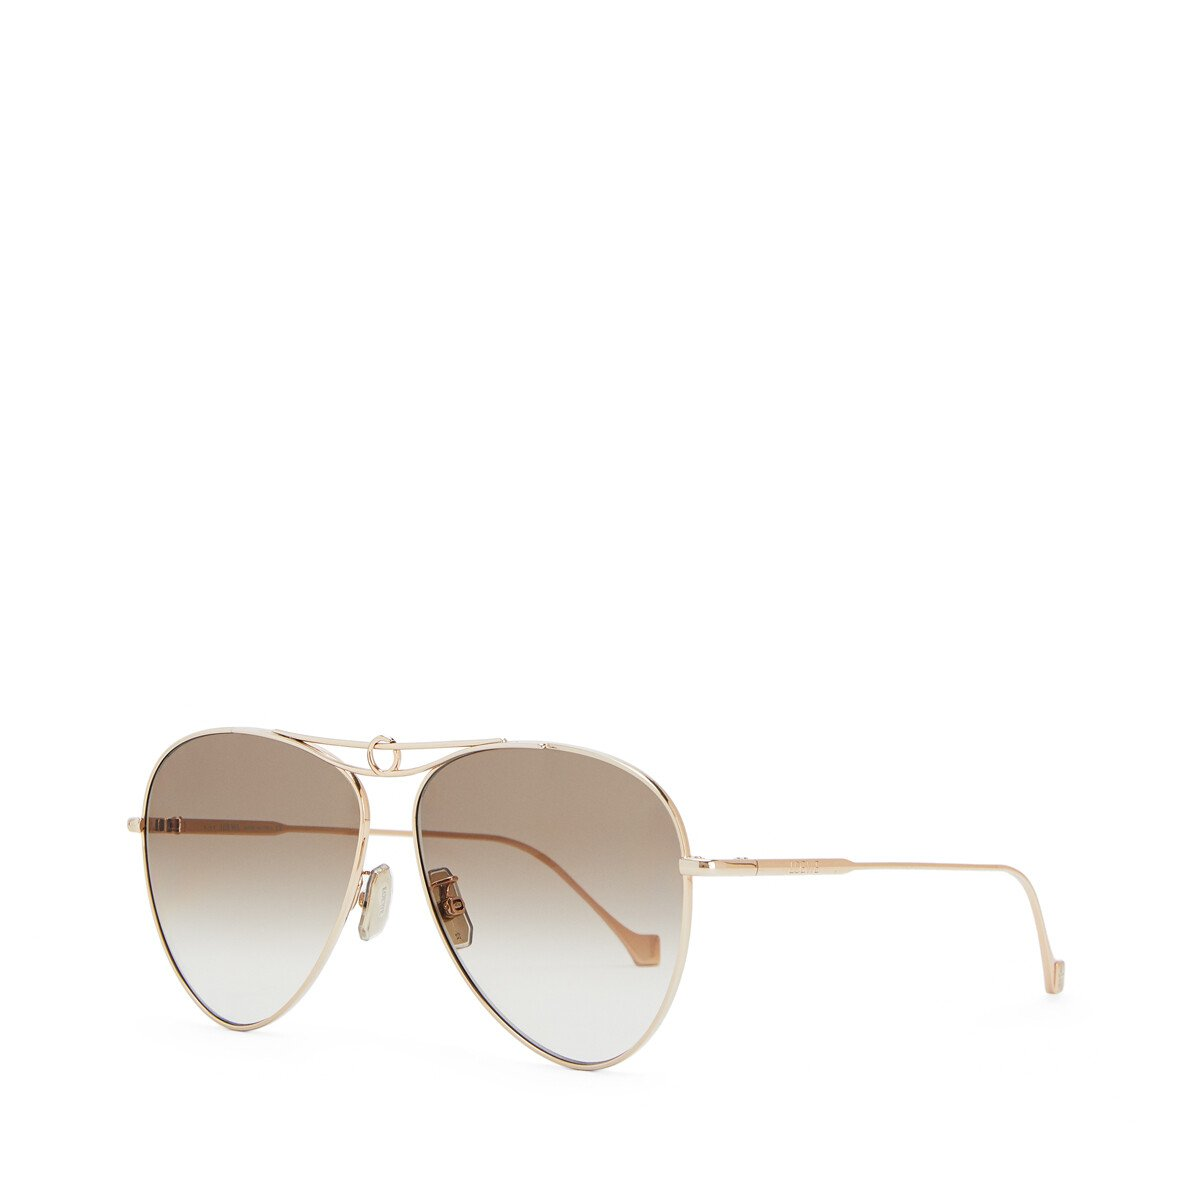 LOEWE Metal Knot Pilot Sunglasses Rose Gold/Brown front